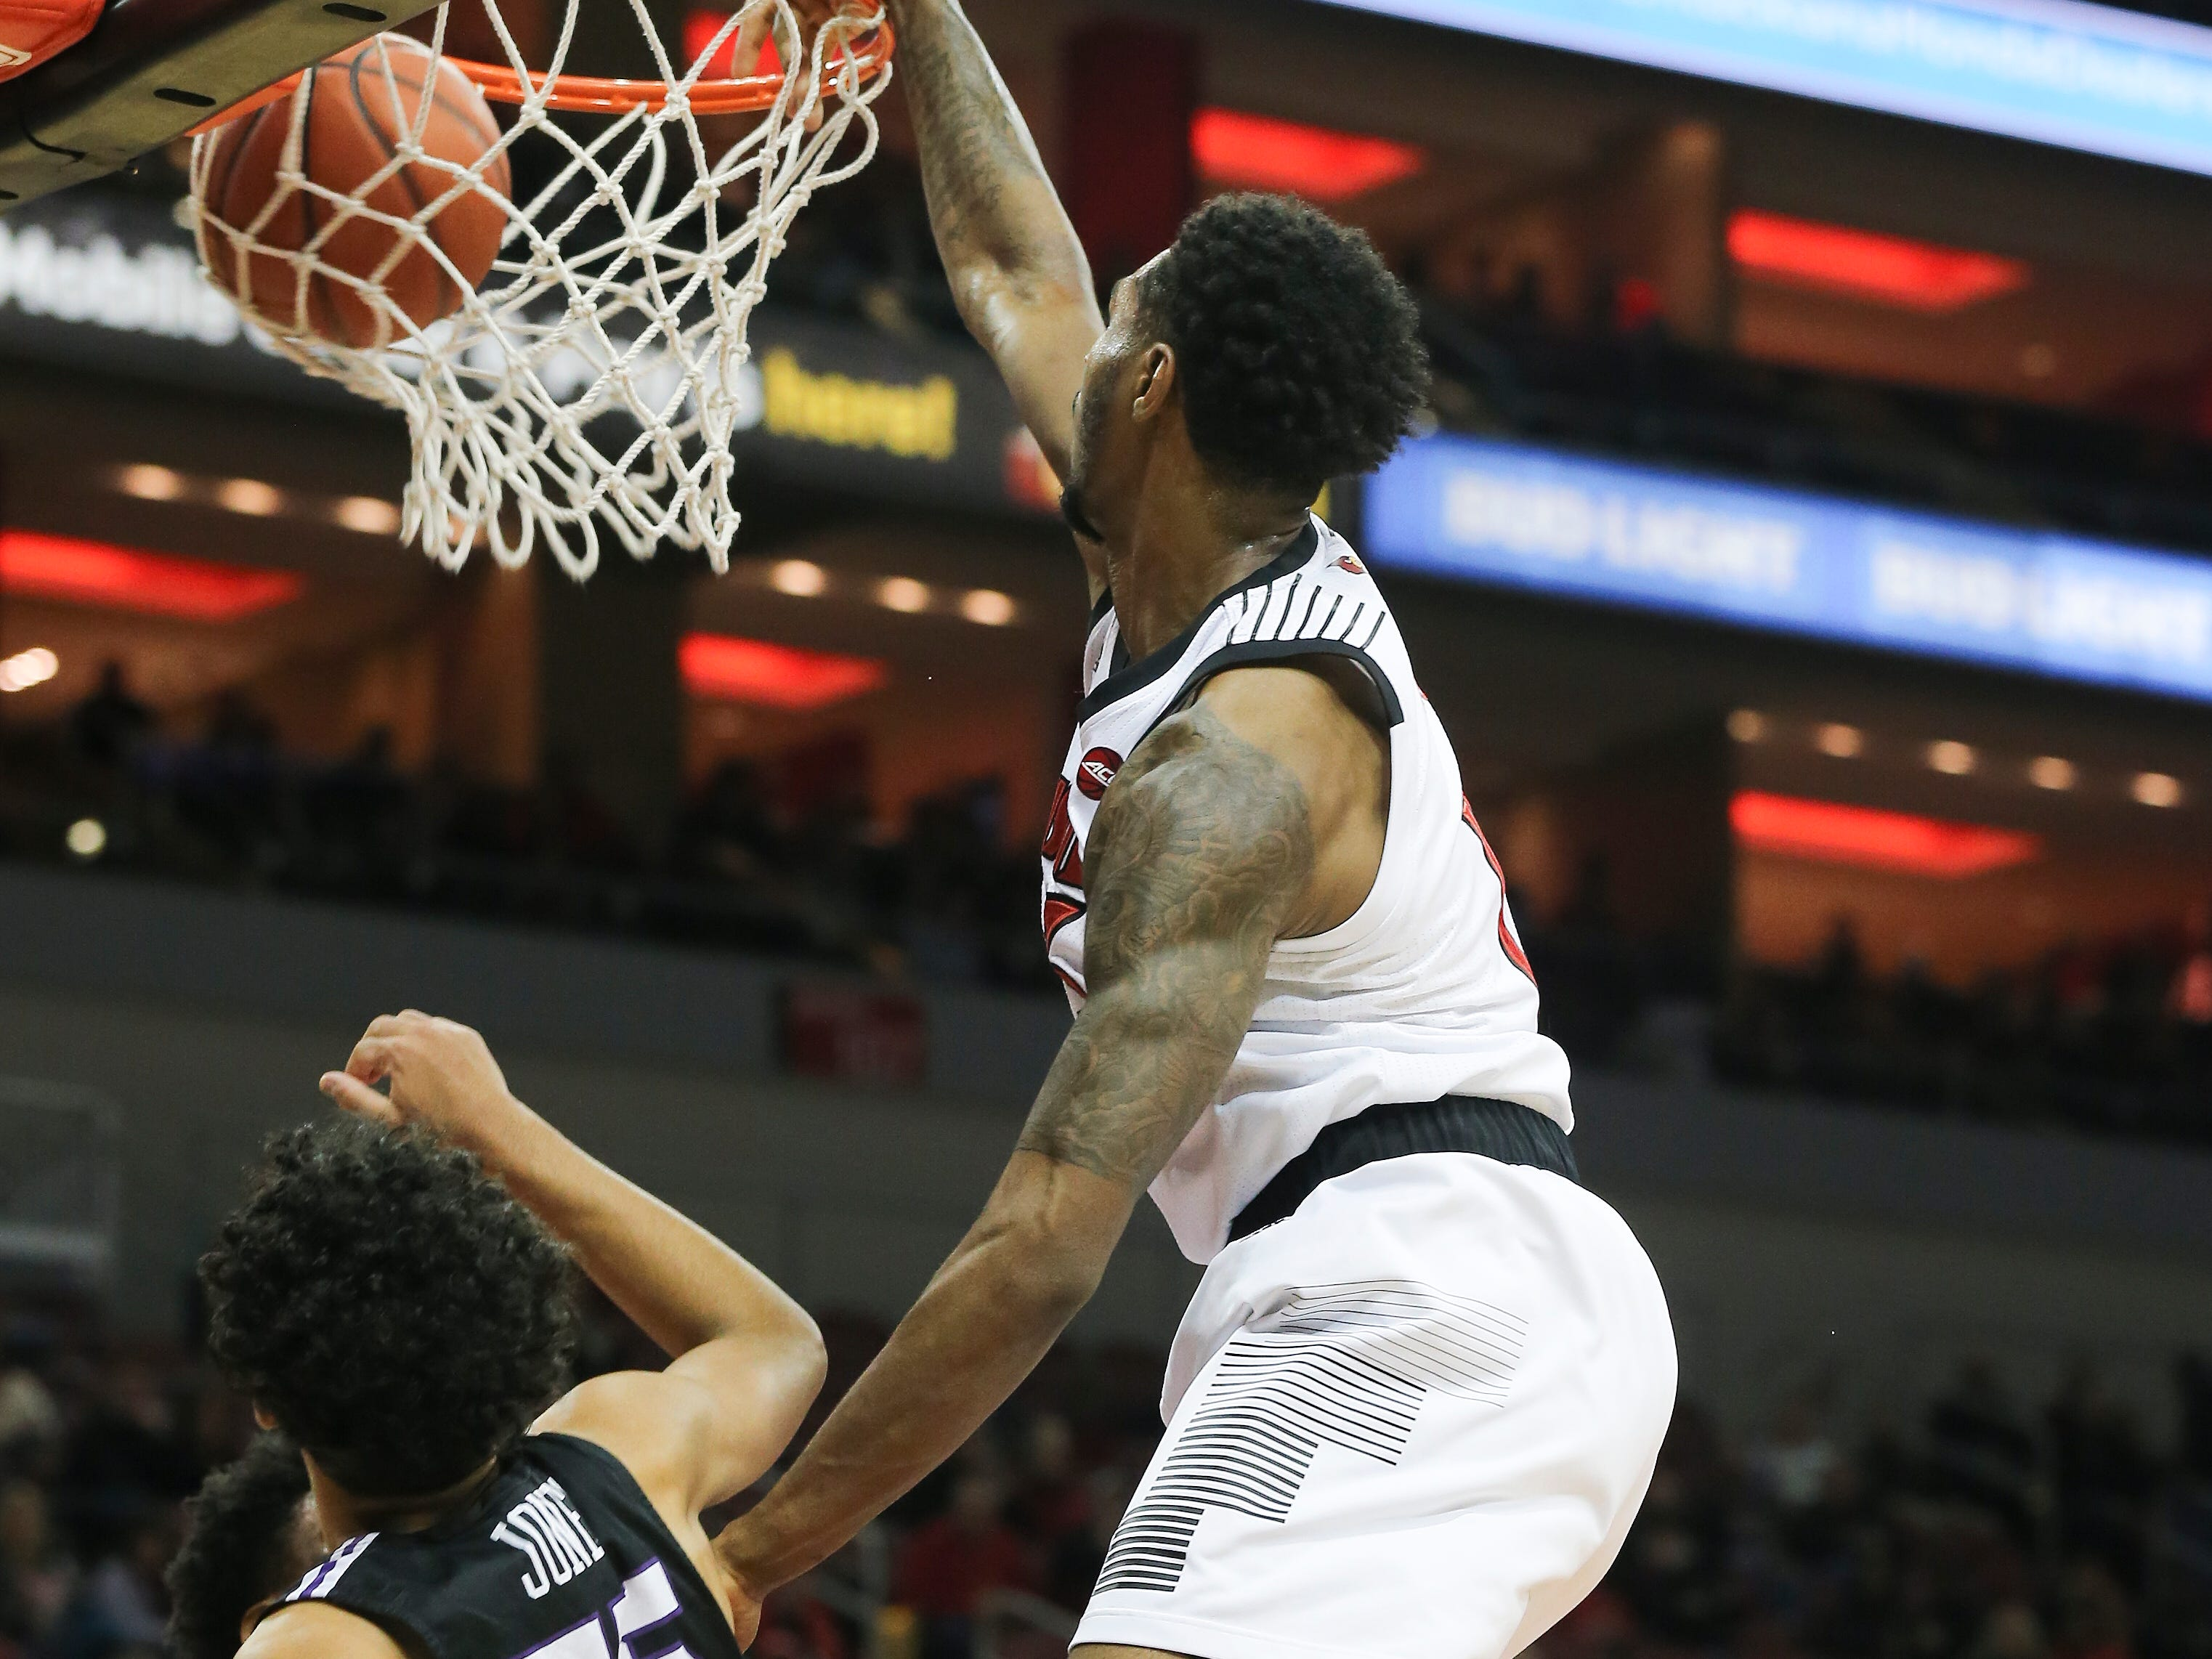 Louisville's V.J. King (13) slams in a put back dunk against Central Arkansas' DeAndre Jones (55) during their game at the Yum Center.  